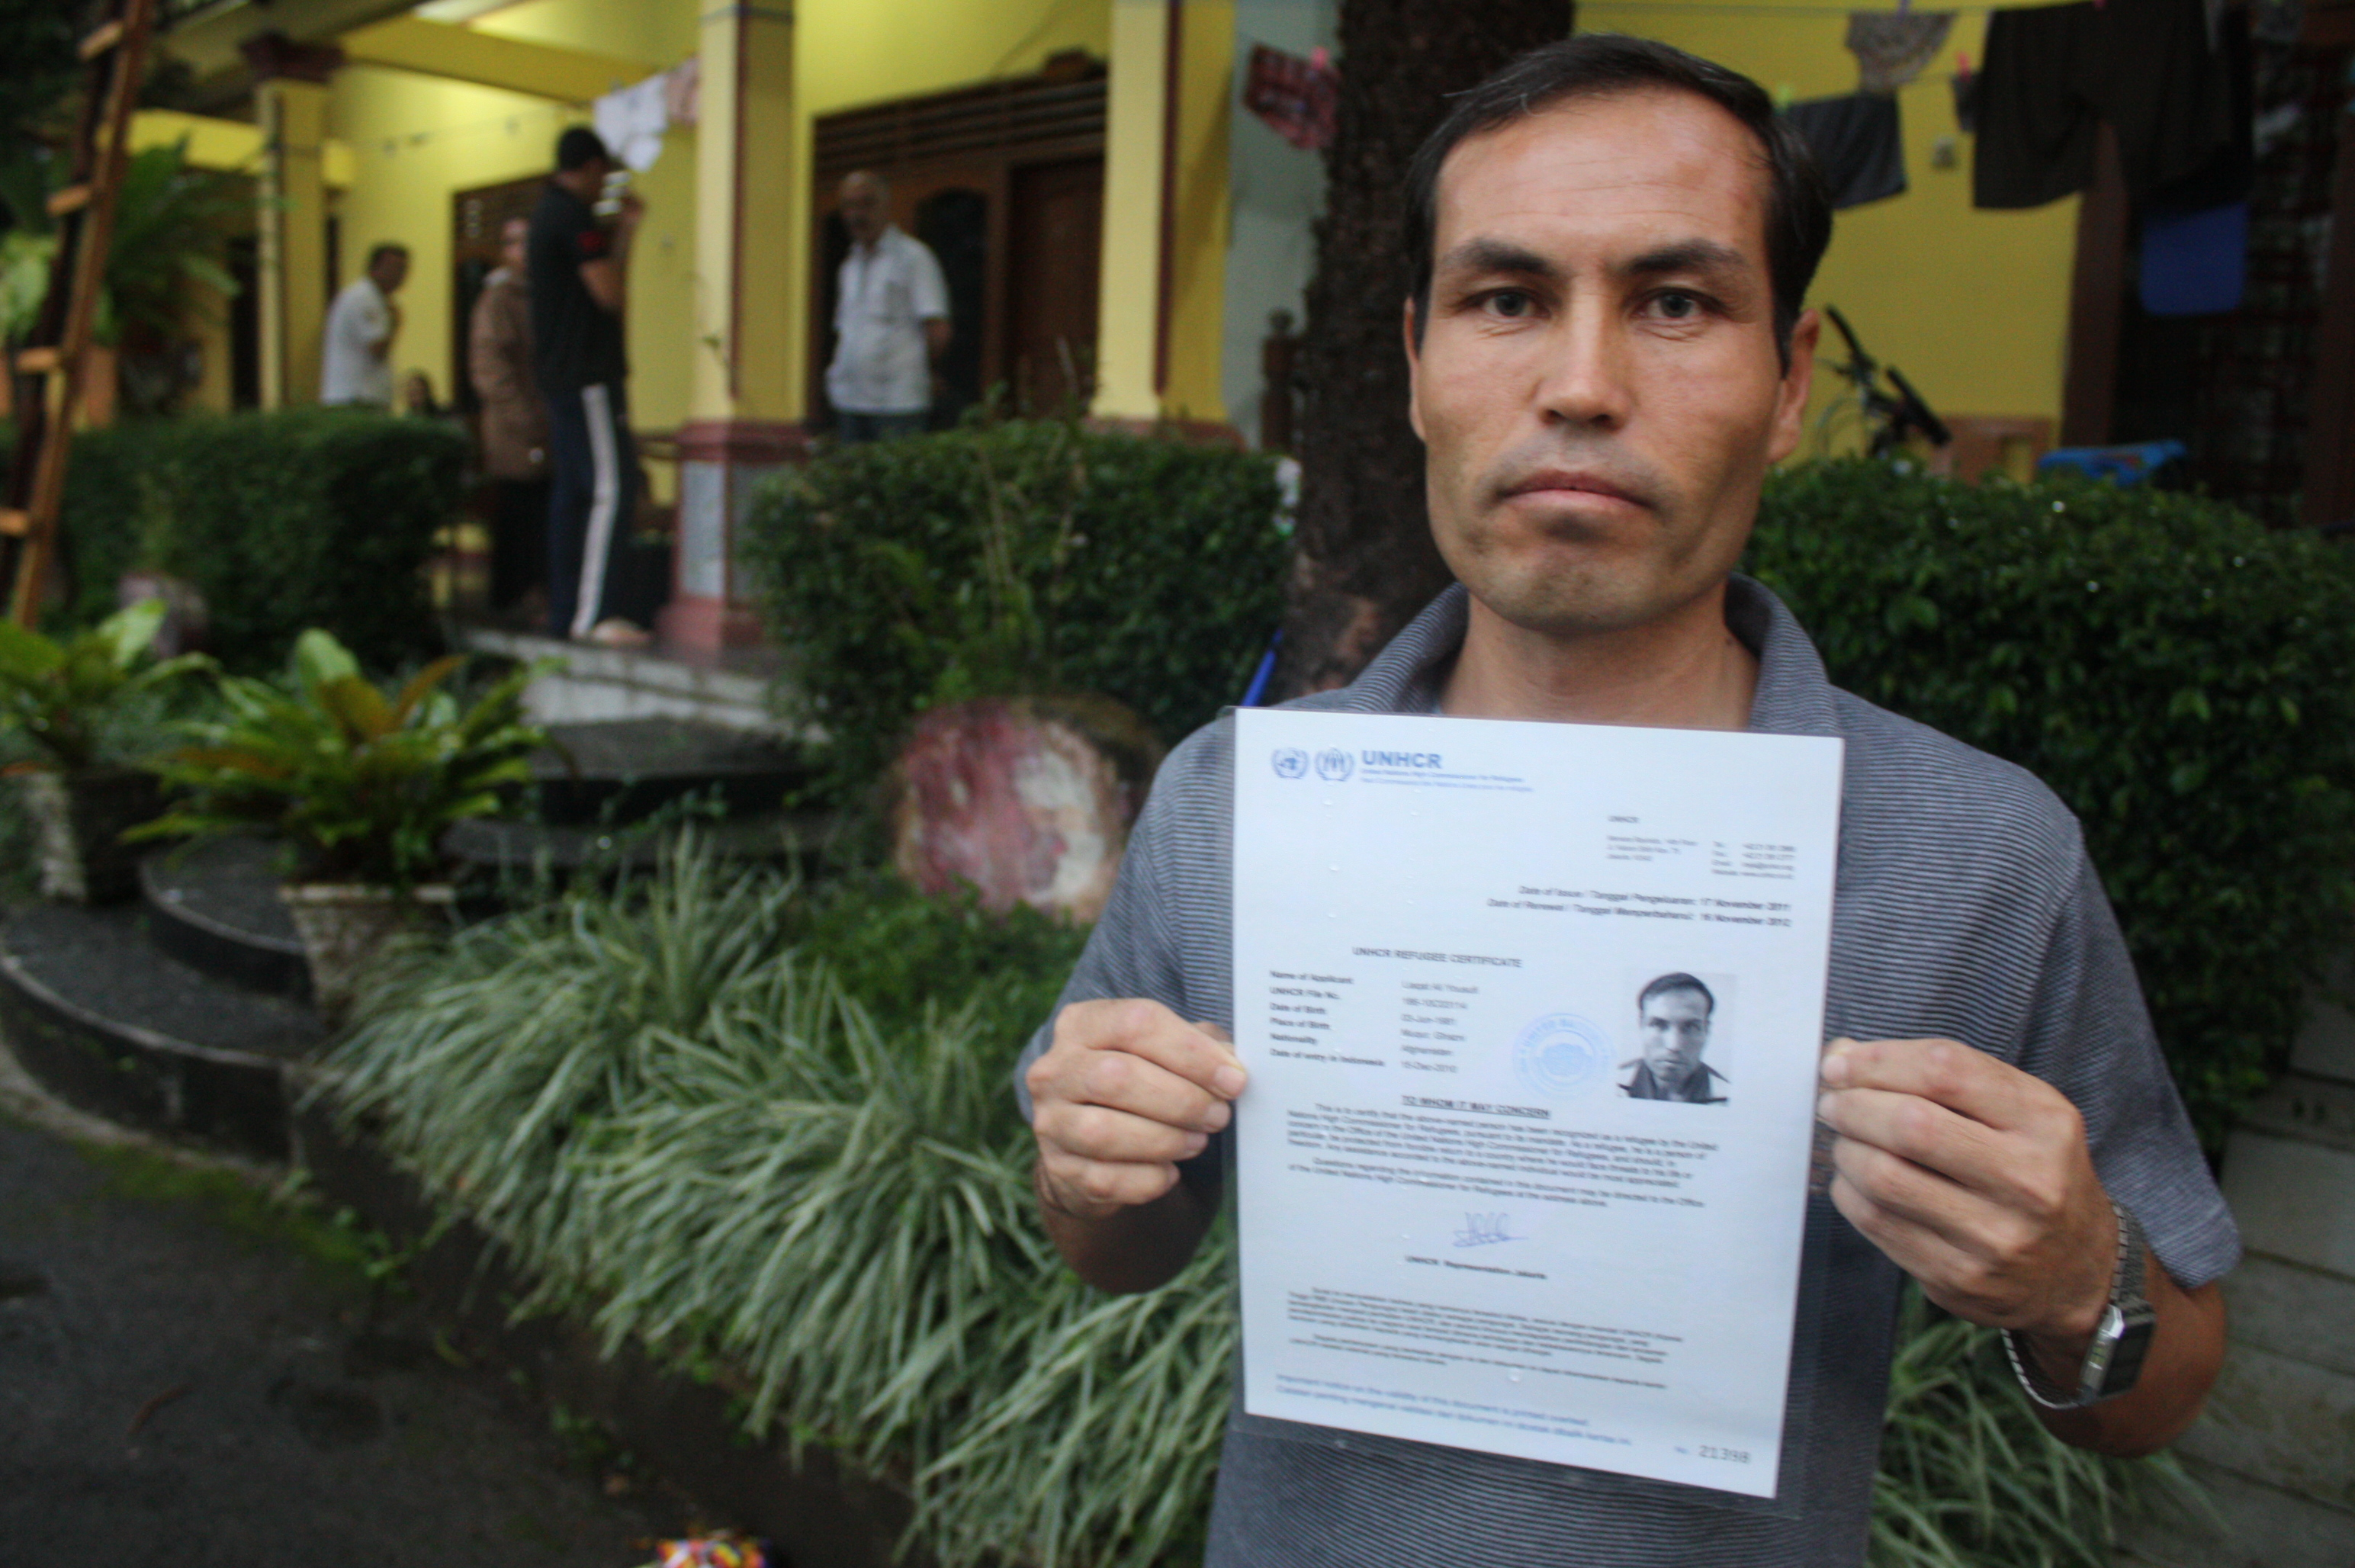 Liaqat Ali Yousufi, a UNHCR-recognized refugee from Afghanistan in Puncak, Indonesia. There are more than 4,000 registered asylum seekers and refugees in Indonesia today, UNHCR reports